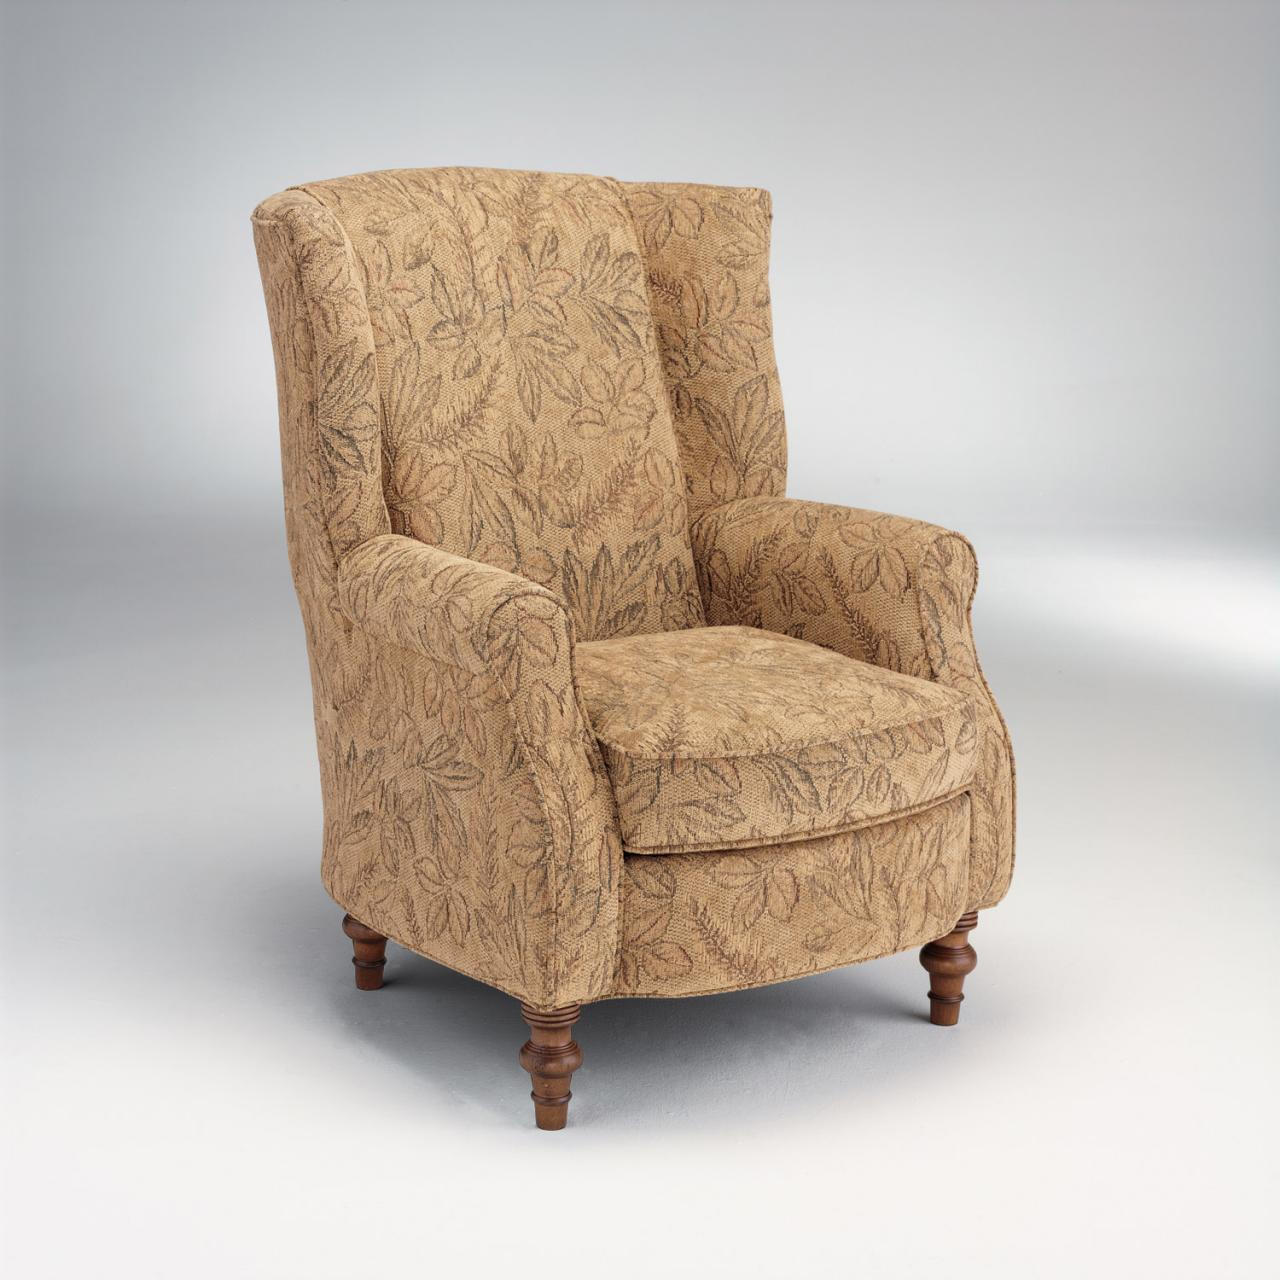 Amazing wing back chair with Solid Strong wood Furniture Design for Dining chair and Living Room Chair Ideas